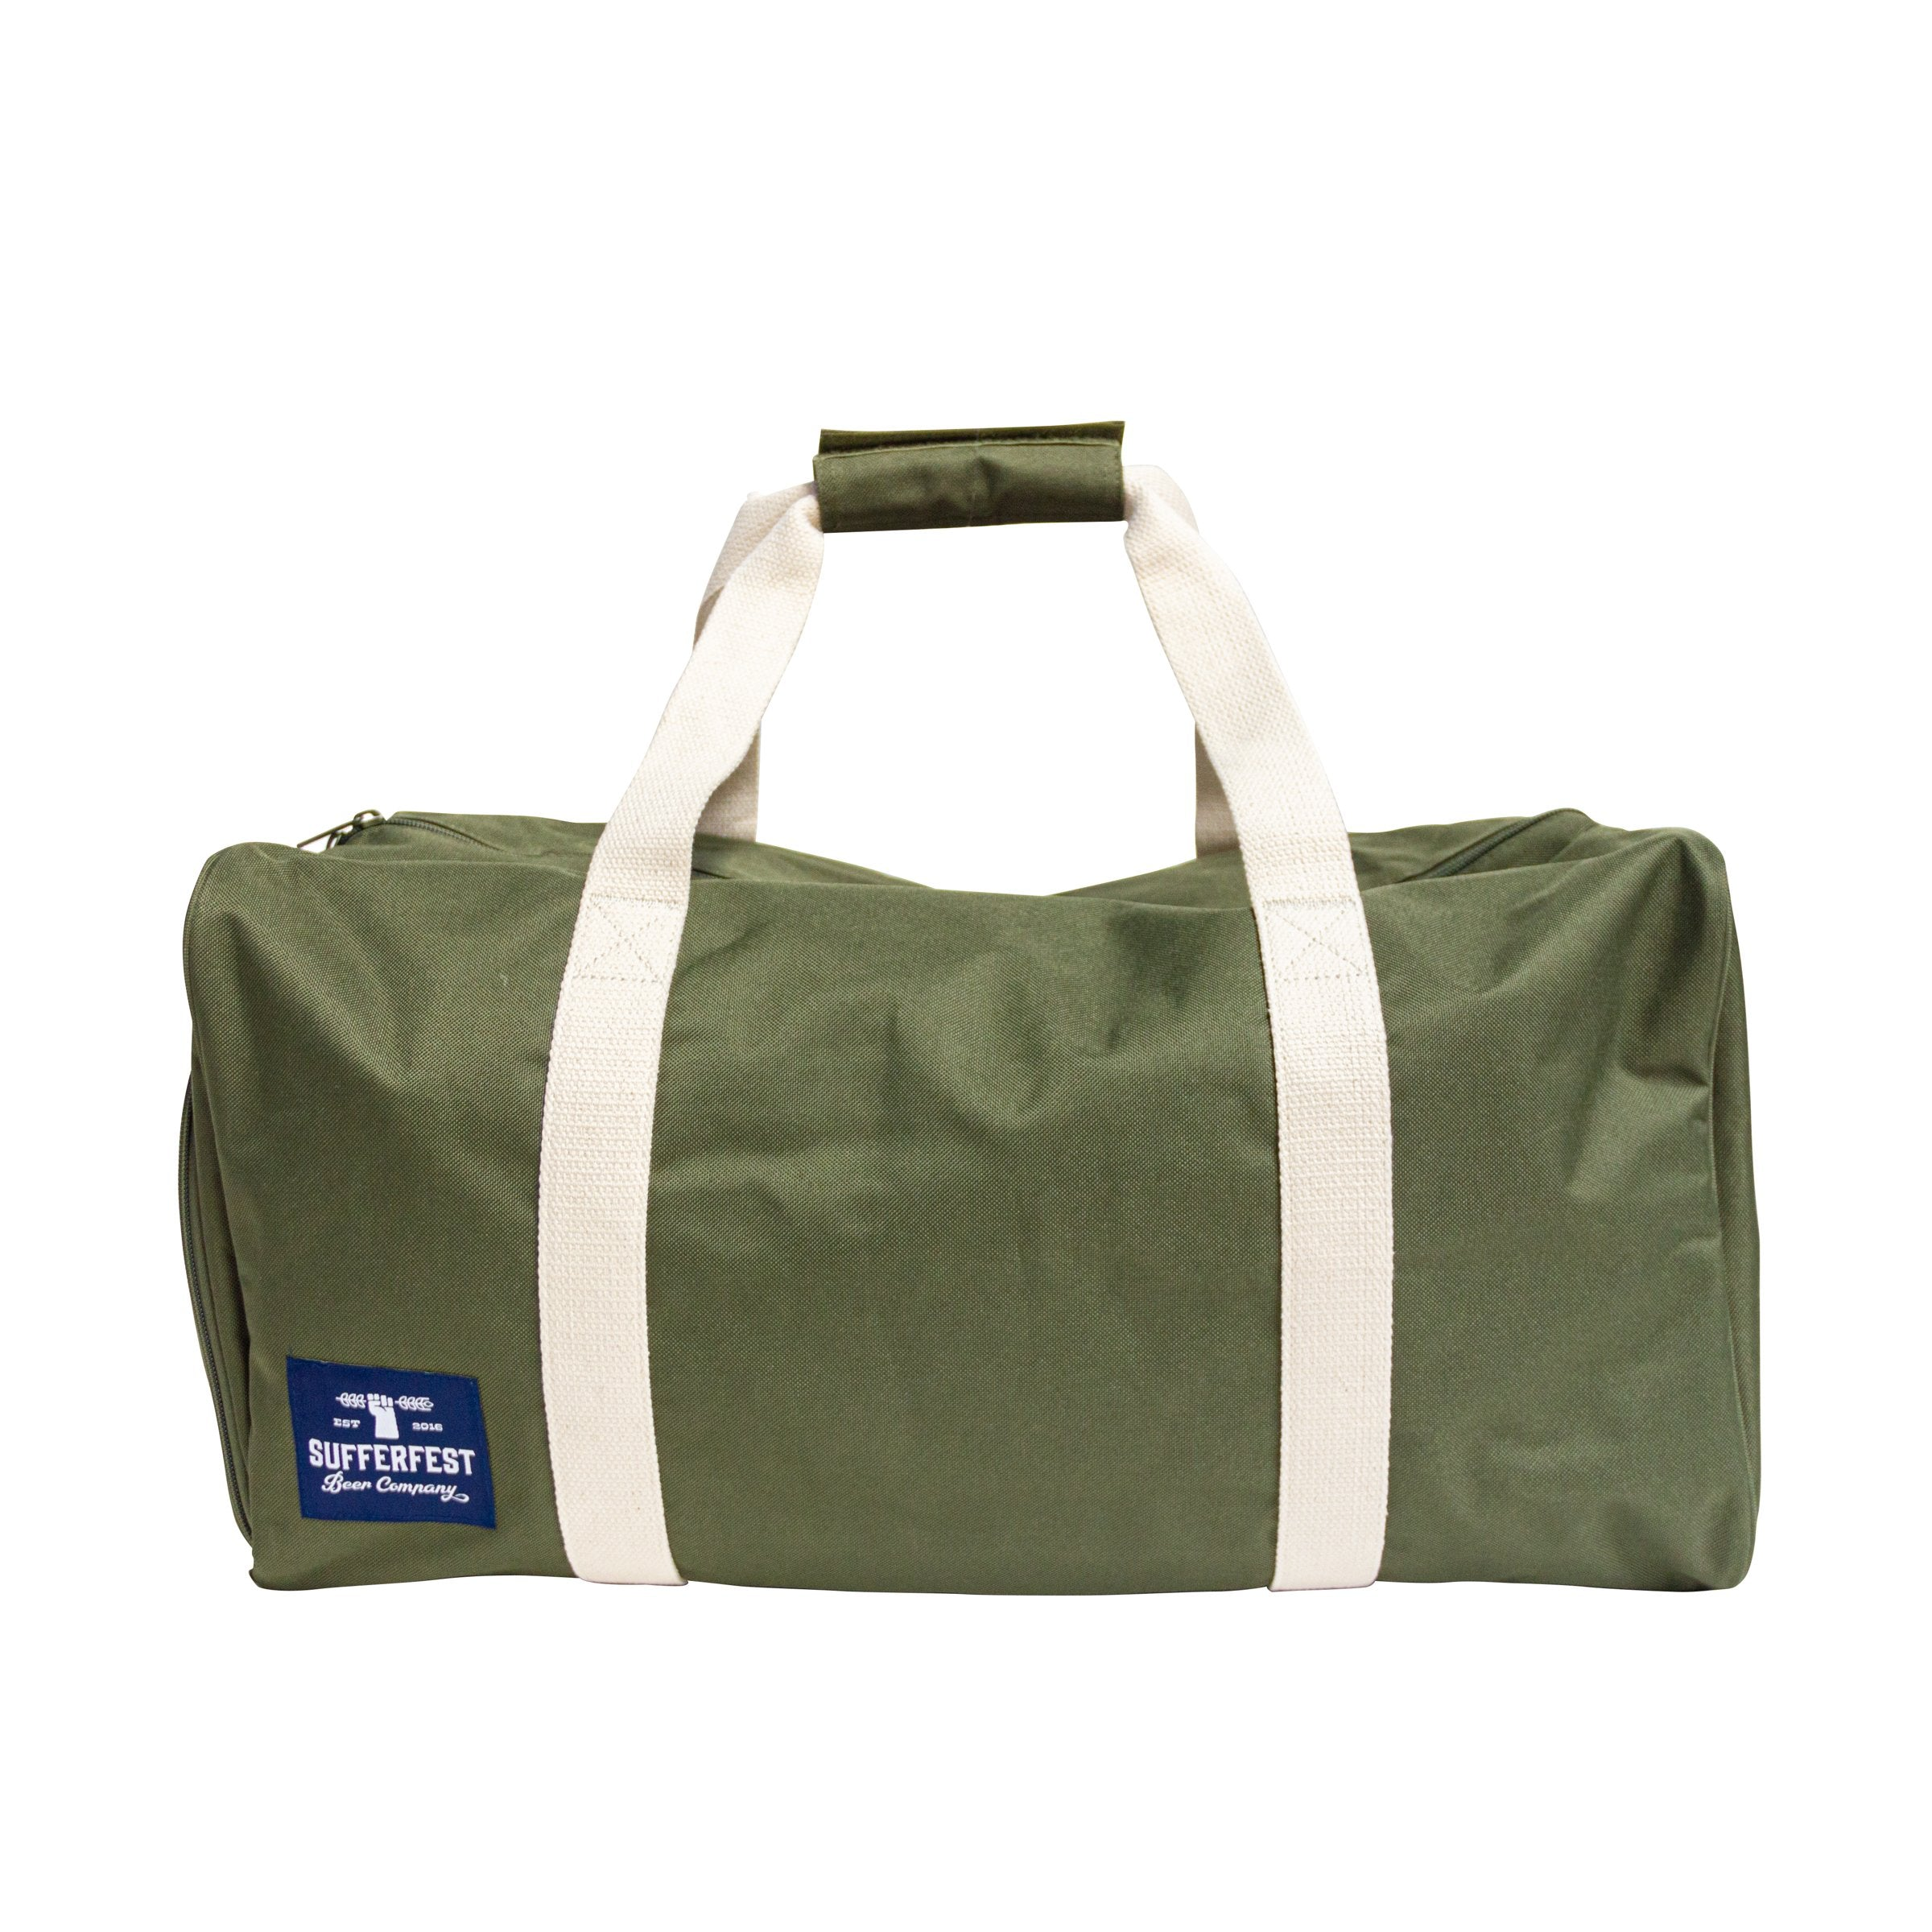 Sufferfest Canvas Duffle Bag